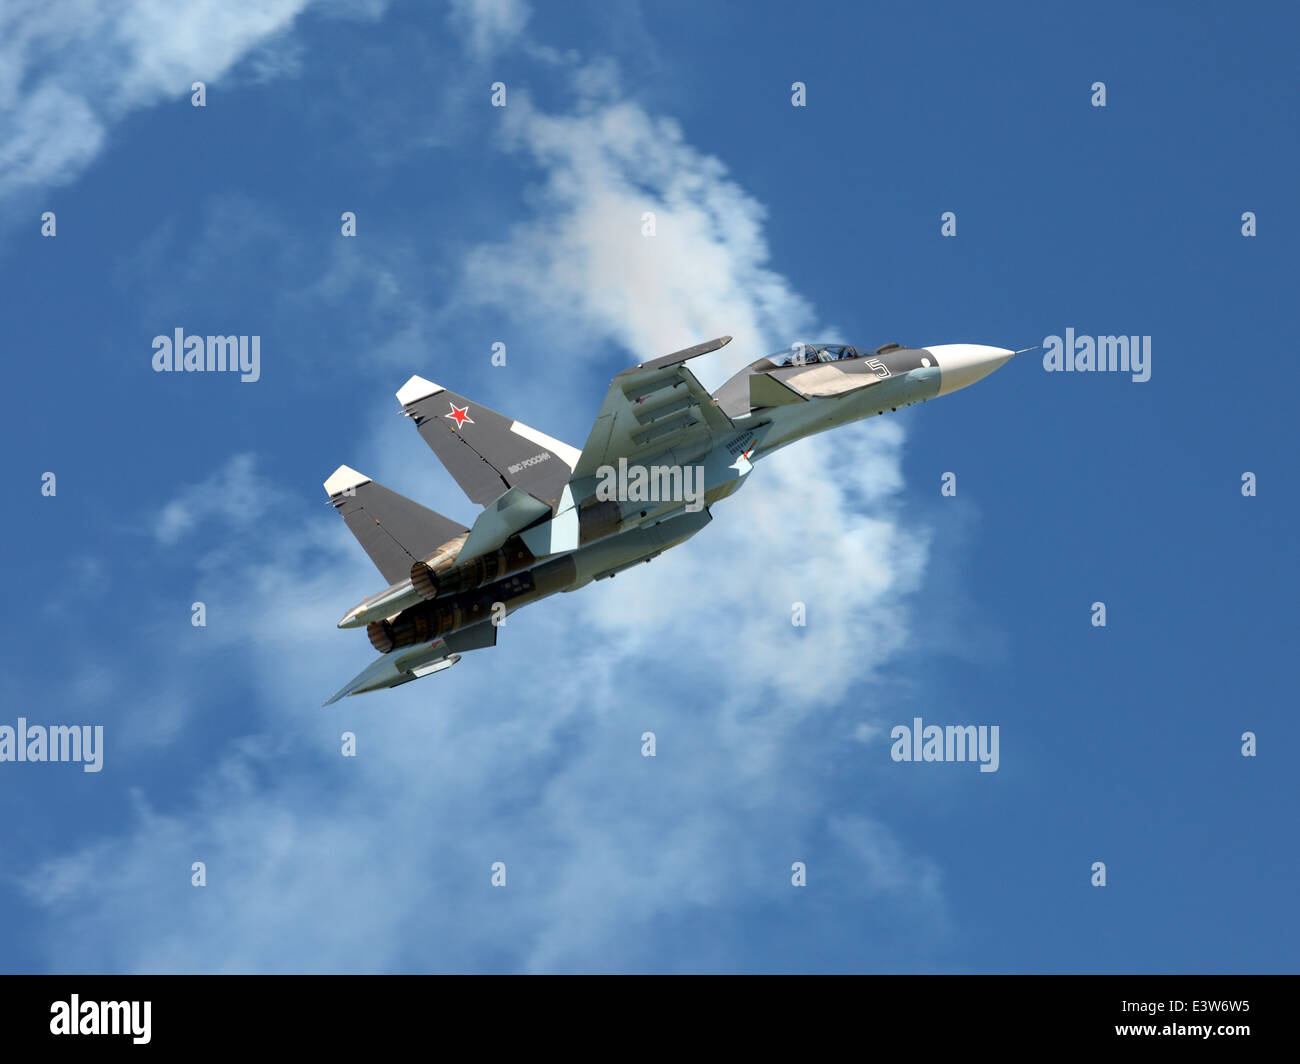 Sukhoi Su-37 (Flanker-F) is russian supermaneuverable multirole jet fighter - Stock Image